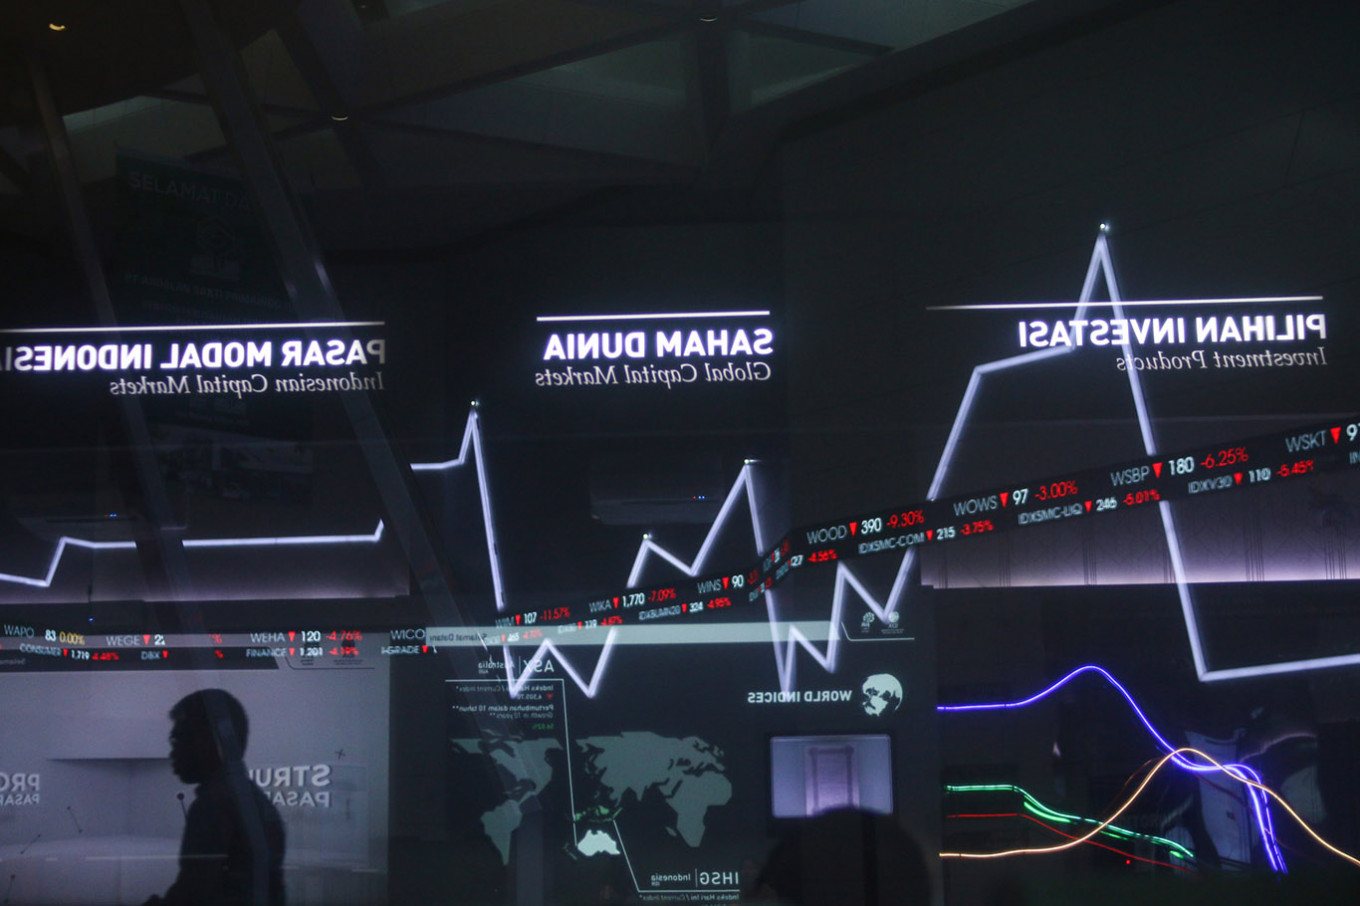 Indonesian bourse lowers expectations, pins hope on domestic investors amid volatility